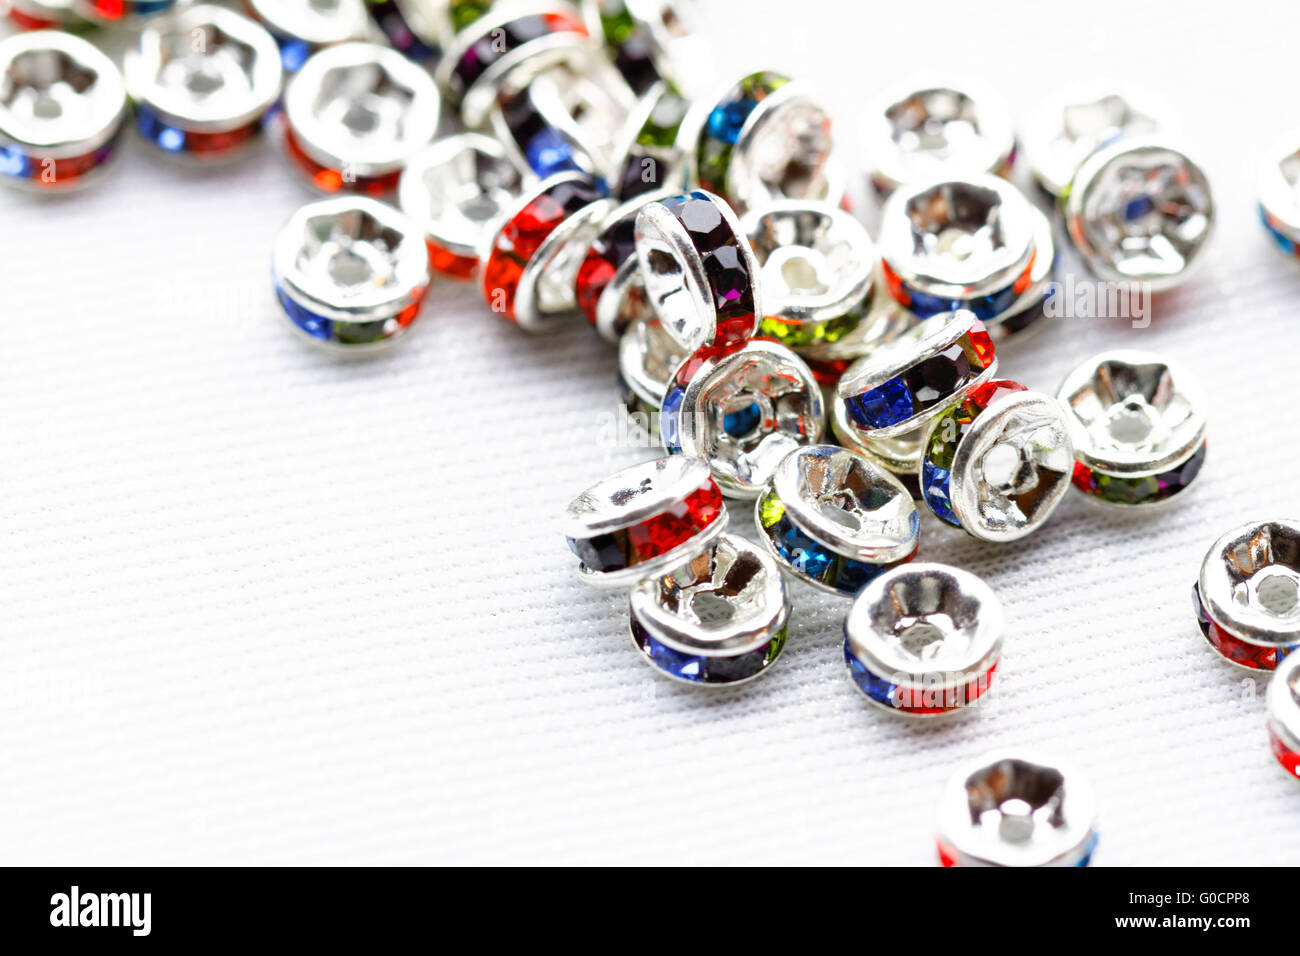 Colorful crystal beads for bracelets jewellery - macro photo - Stock Image